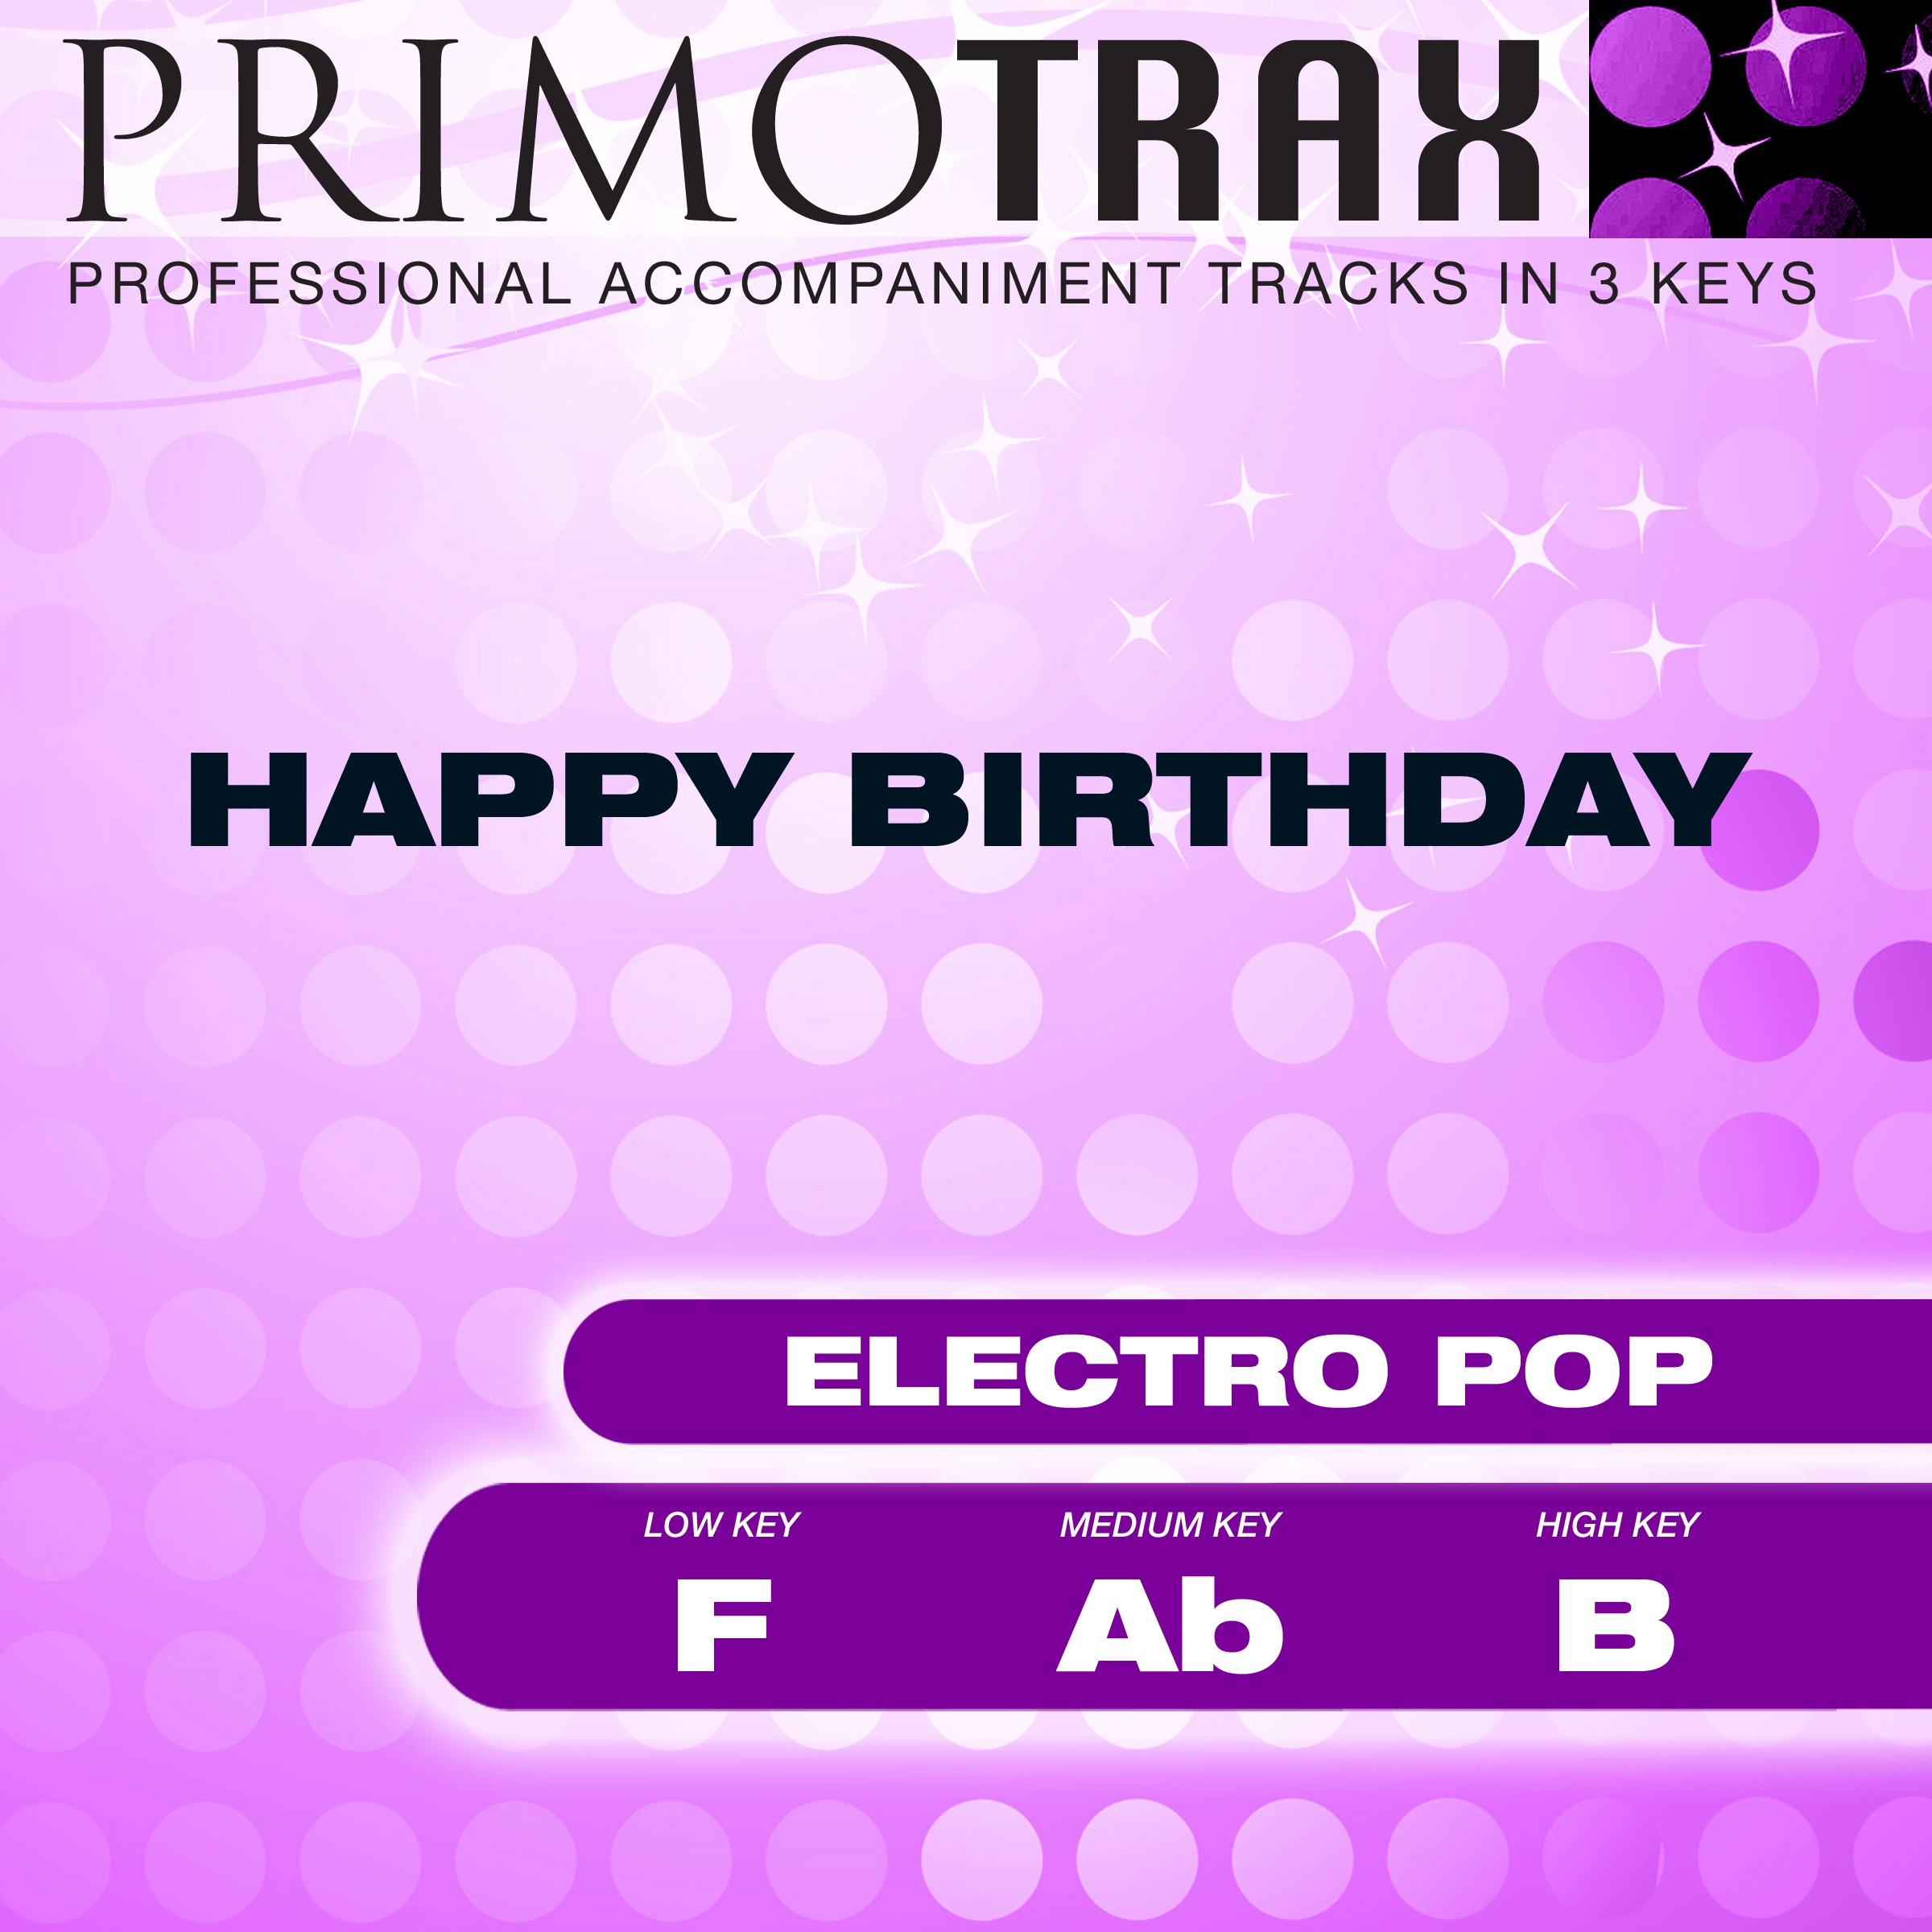 Happy Birthday - (High Key - B) Performance Backing Track (Electro Pop)